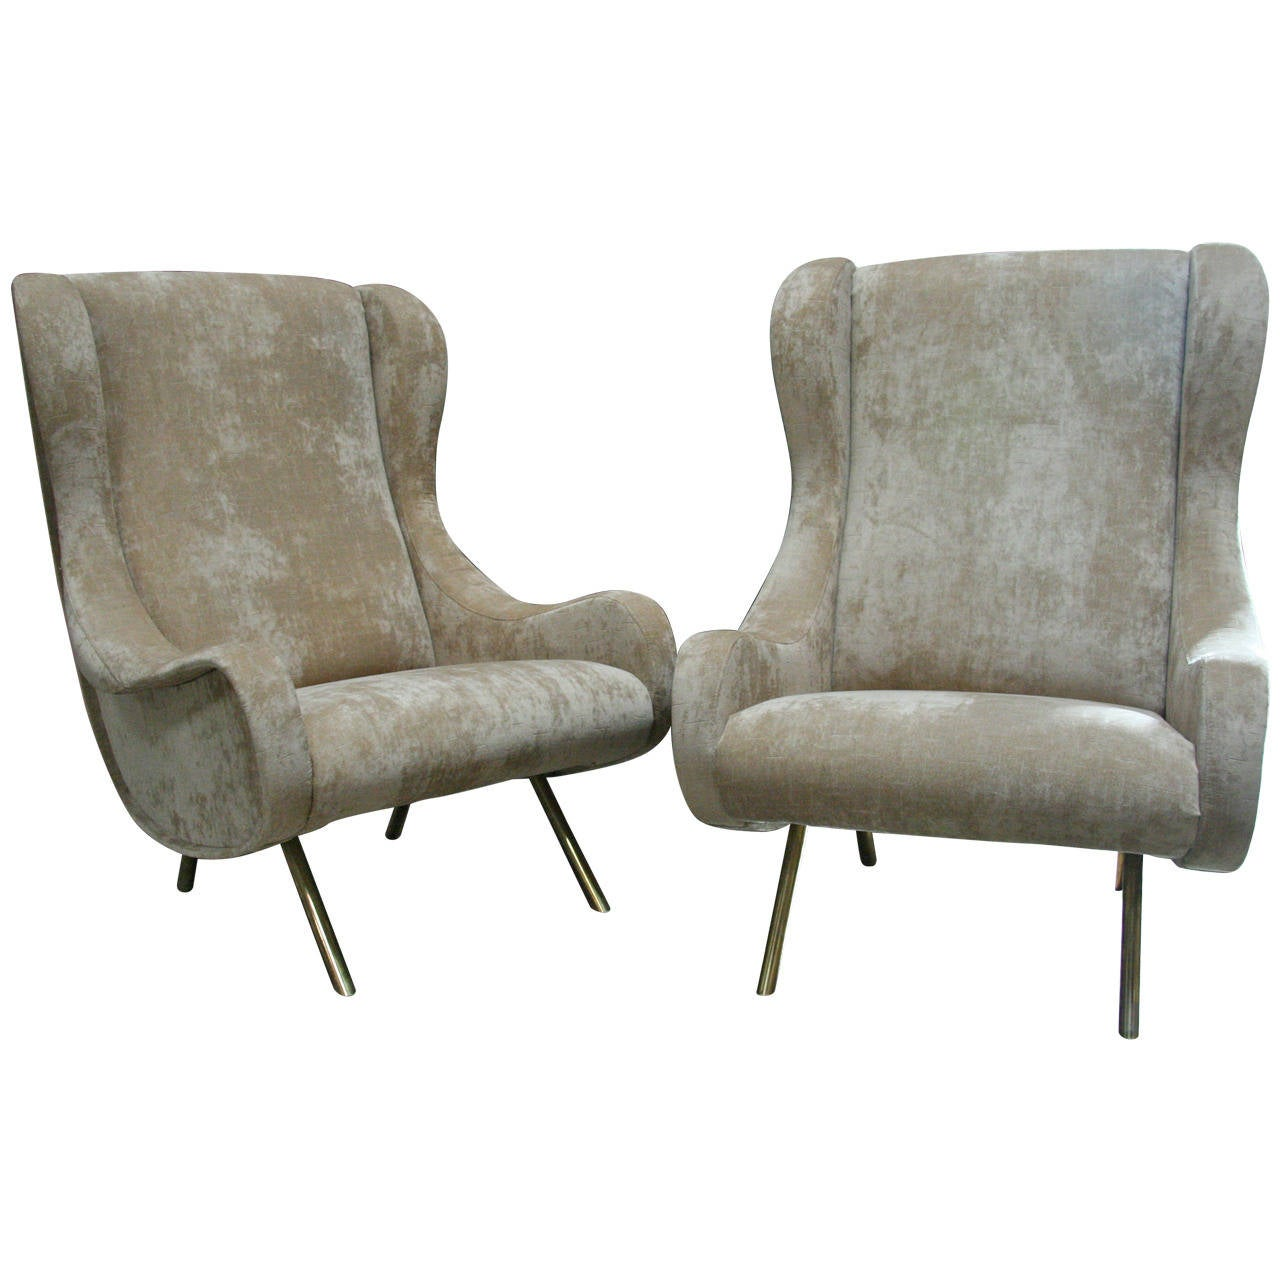 chairs for seniors portable salon chair marco zanuso quotsenior quot lounge at 1stdibs